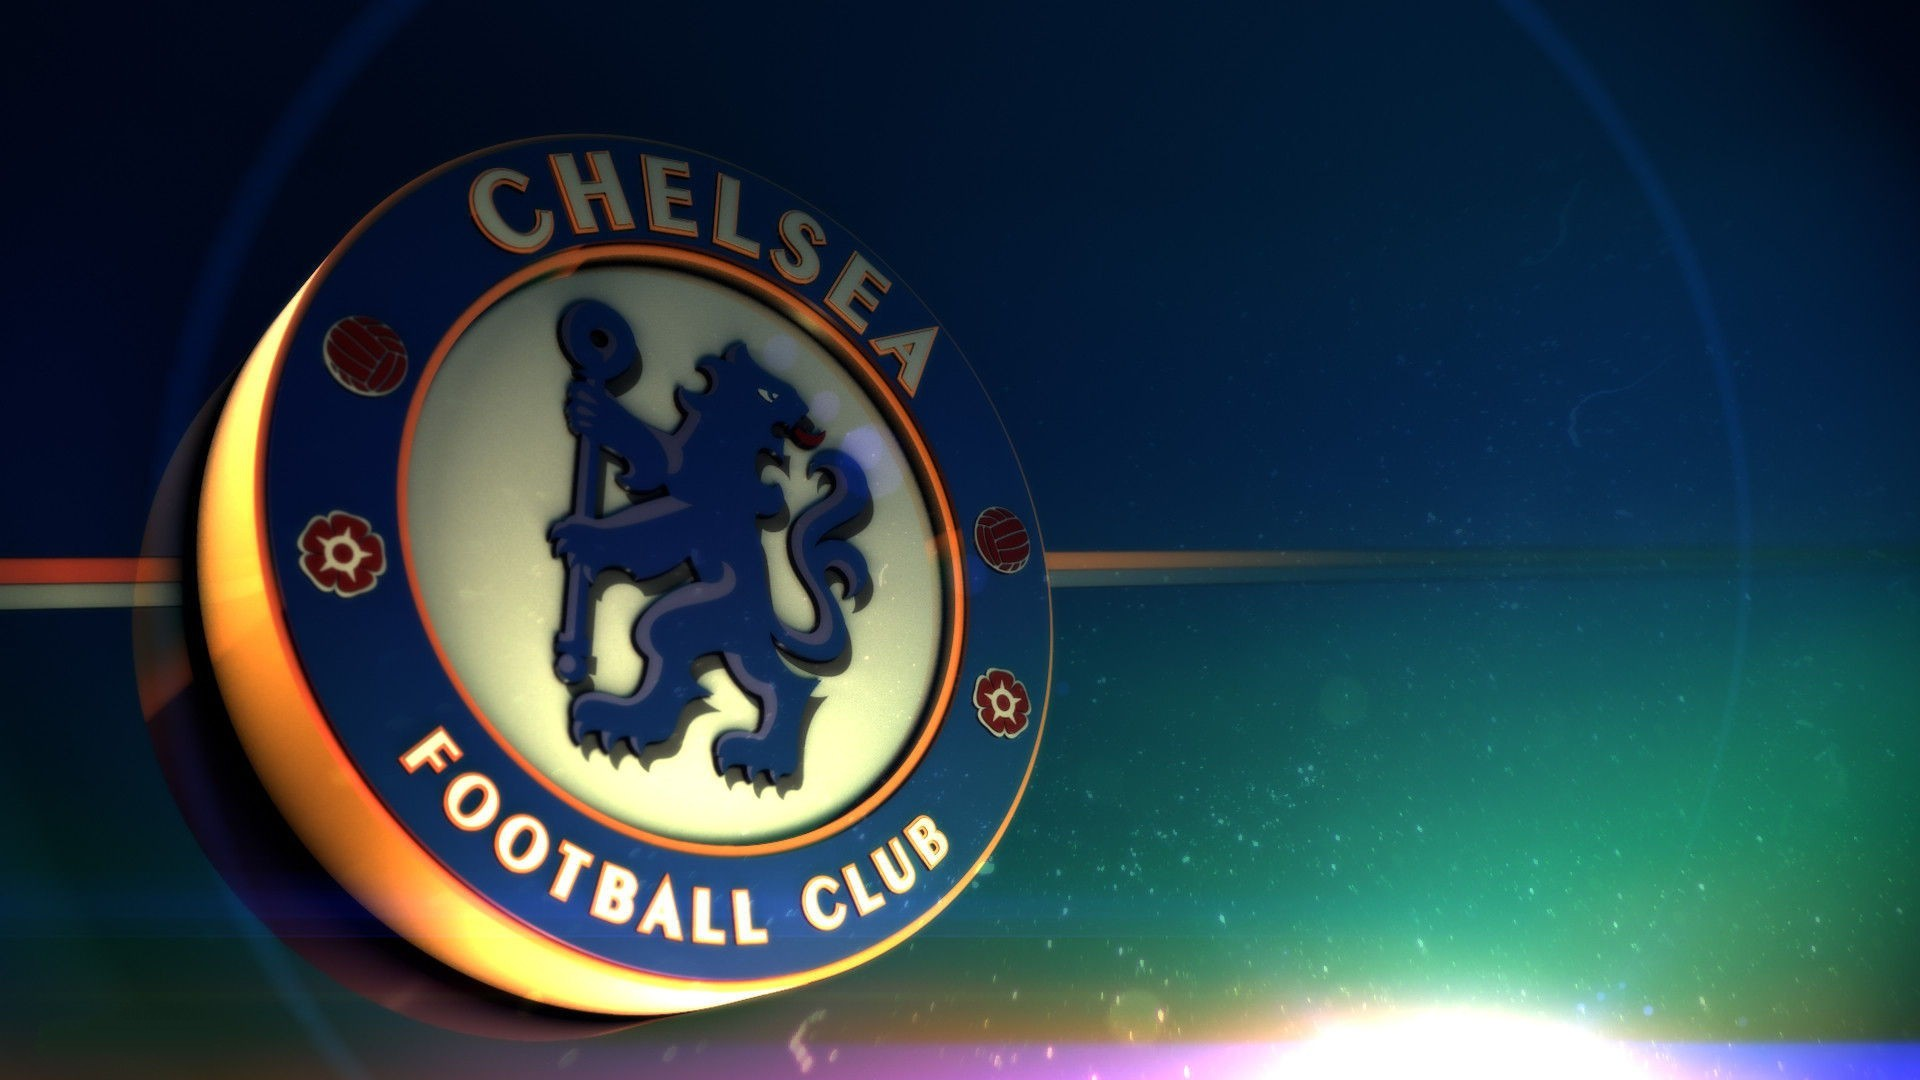 Chelsea Hd Wallpapers 1080p 75 Images